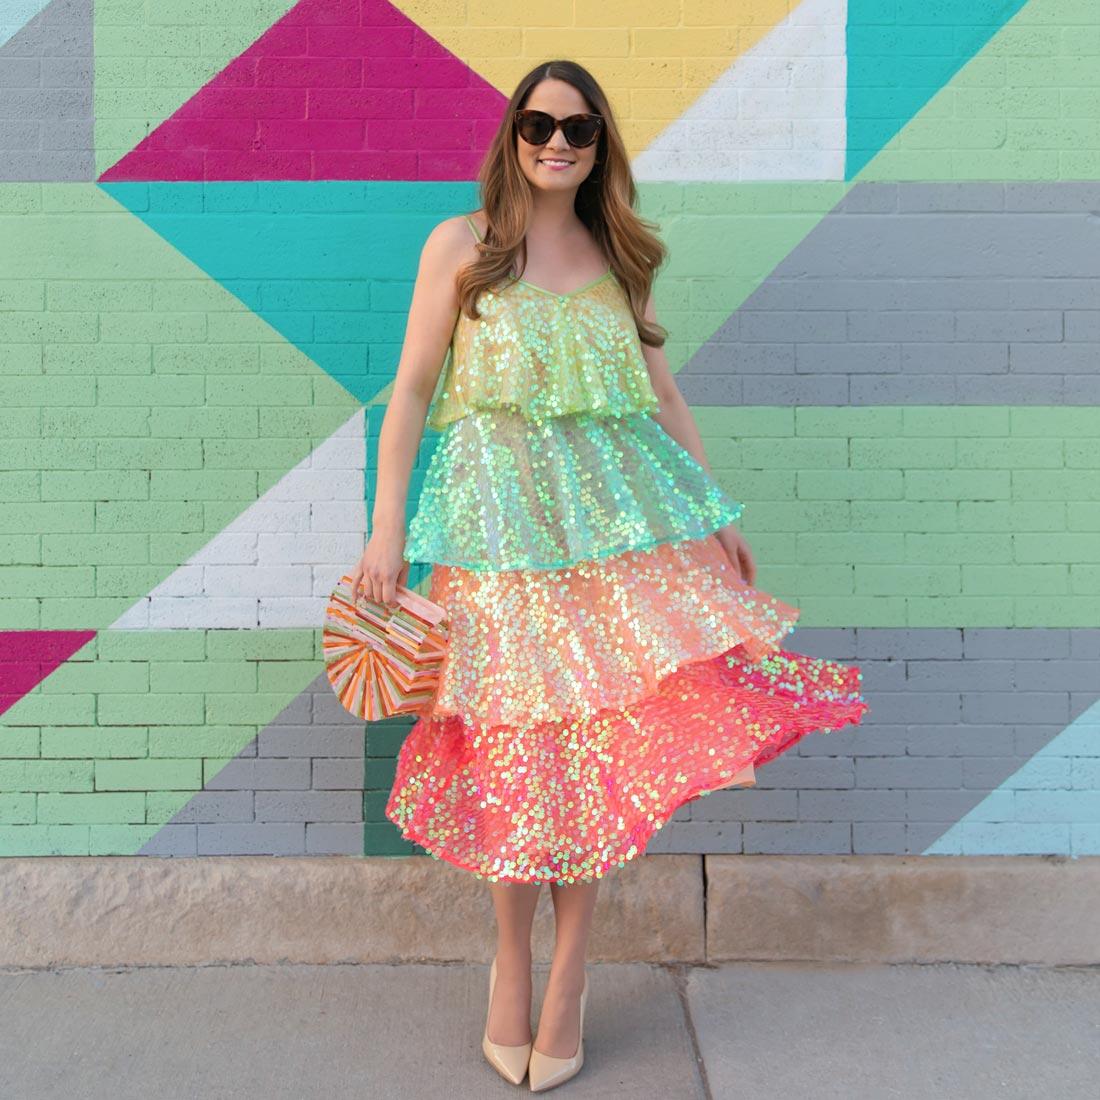 Tiered Rainbow Sequin Dress